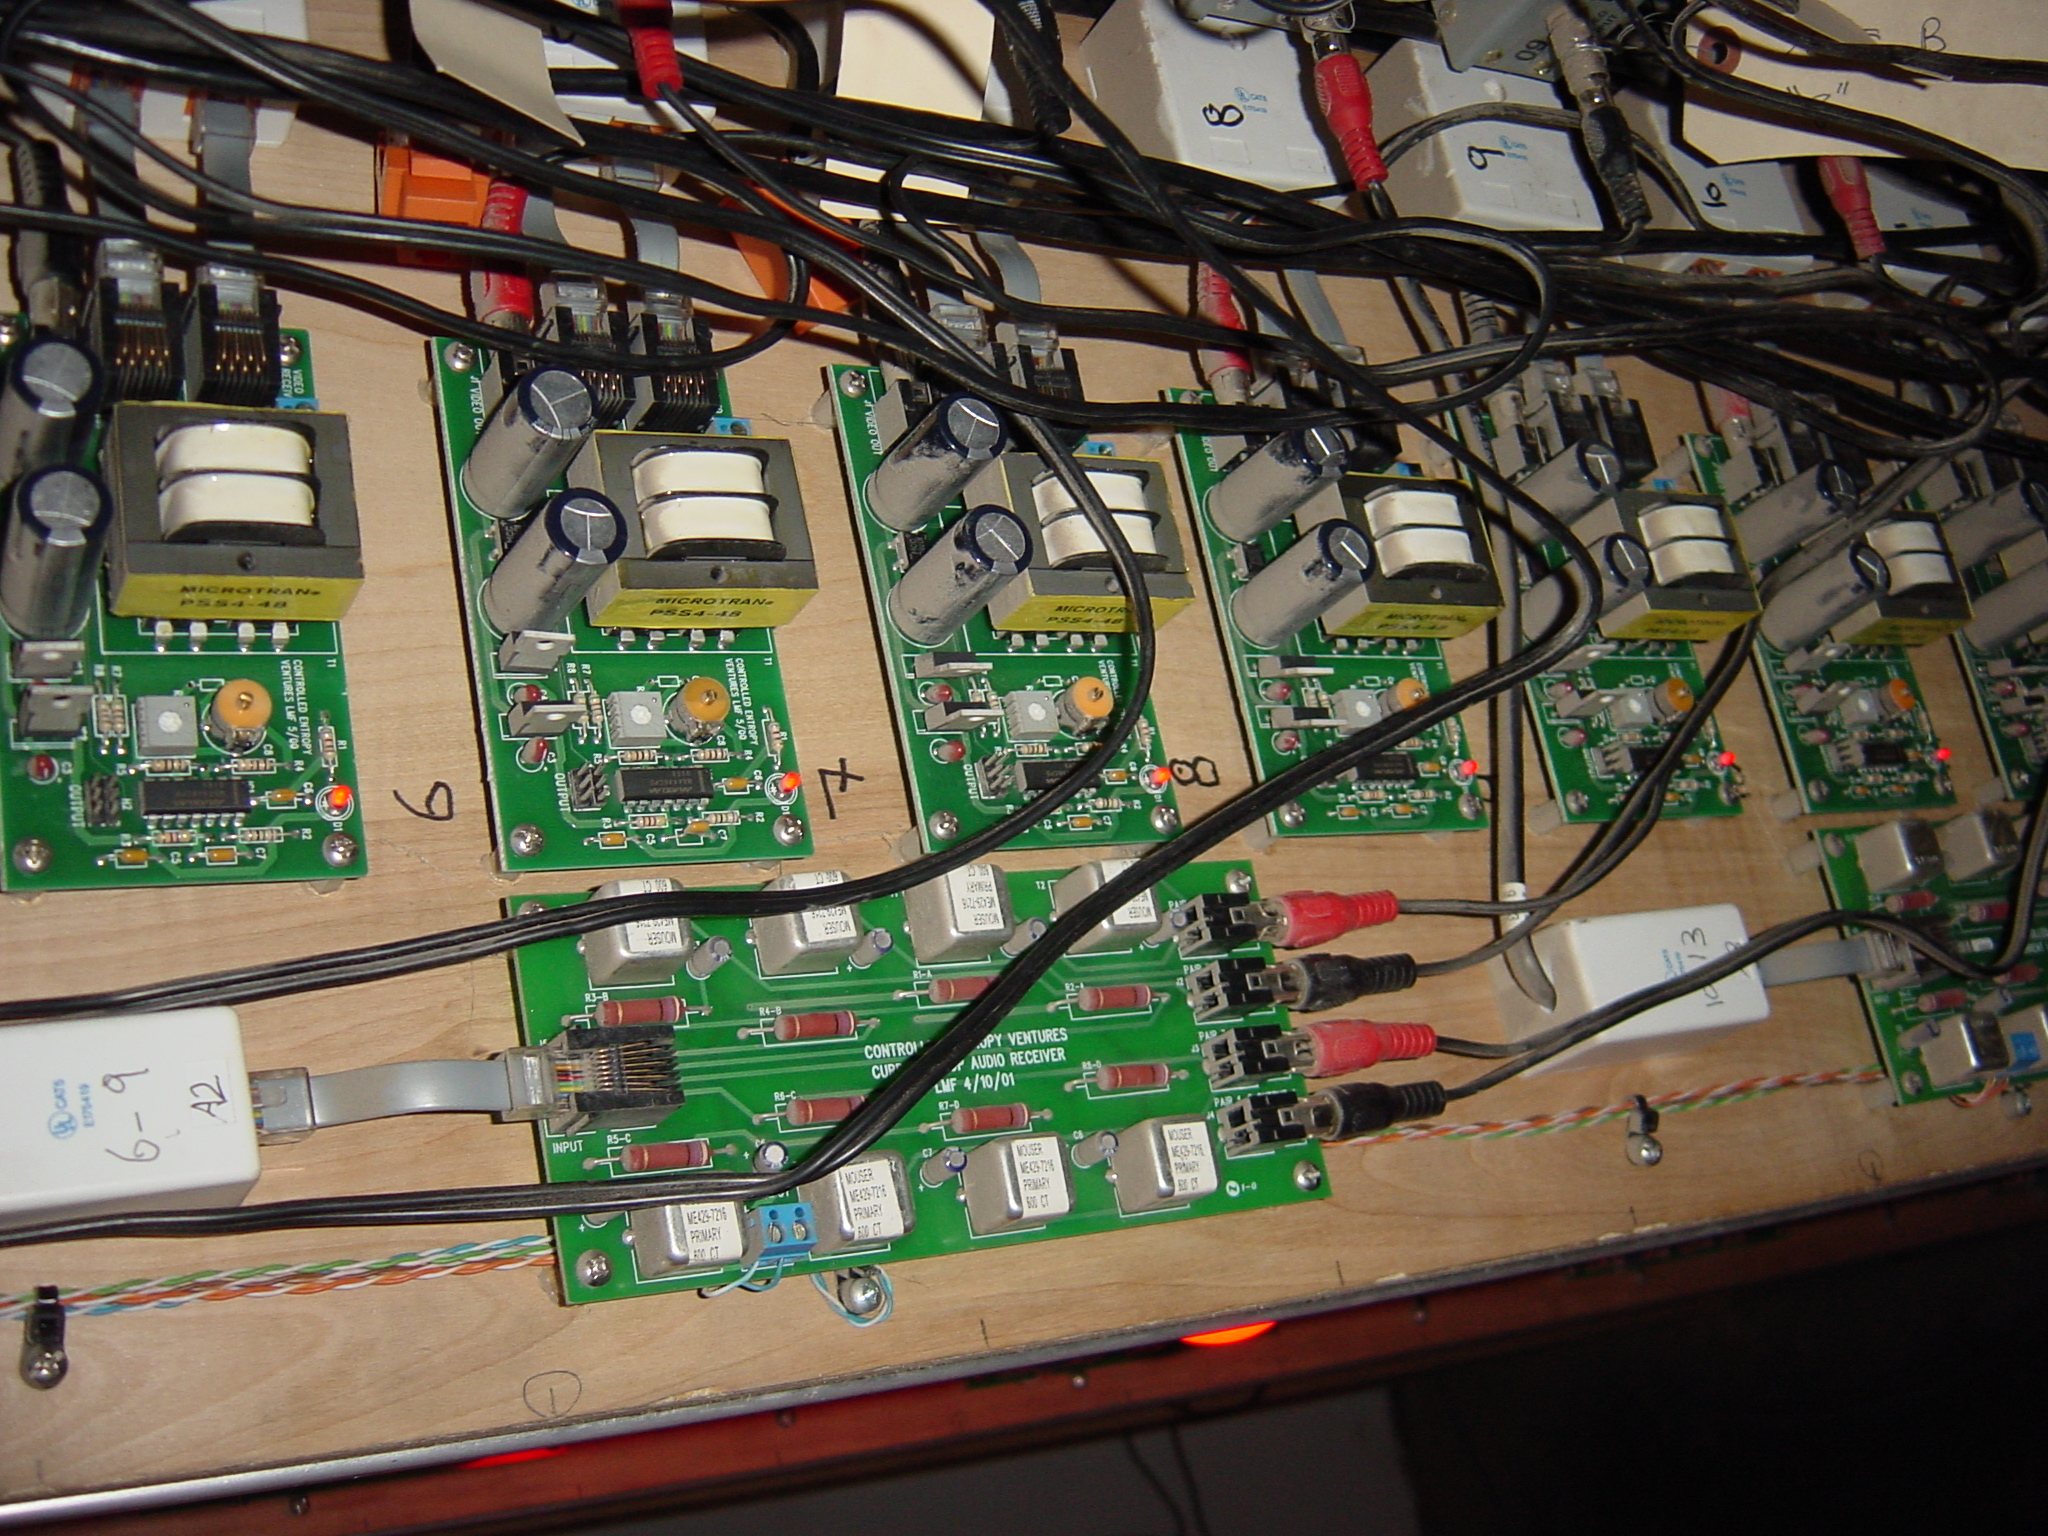 Custom designed boards move video, audio, and control signals over CAT-5 cables.